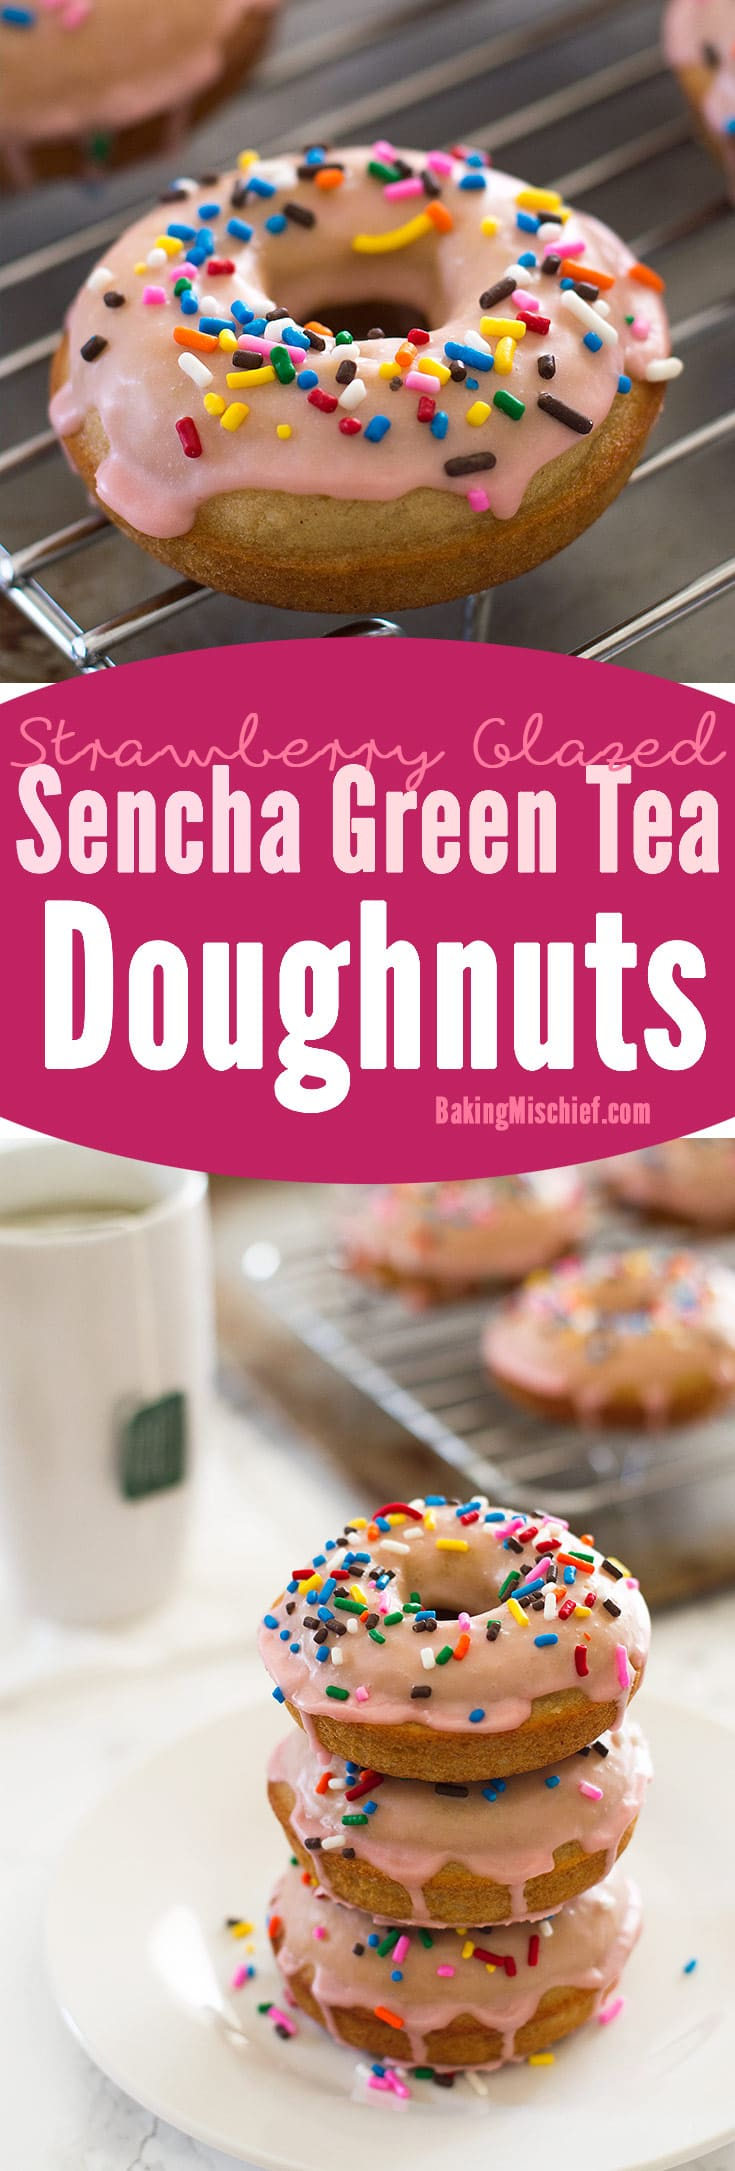 My favorite baked doughnut recipe infused with sencha green tea and topped with a fresh strawberry glaze and sprinkles. Recipe includes nutritional information. From BakingMischief.com